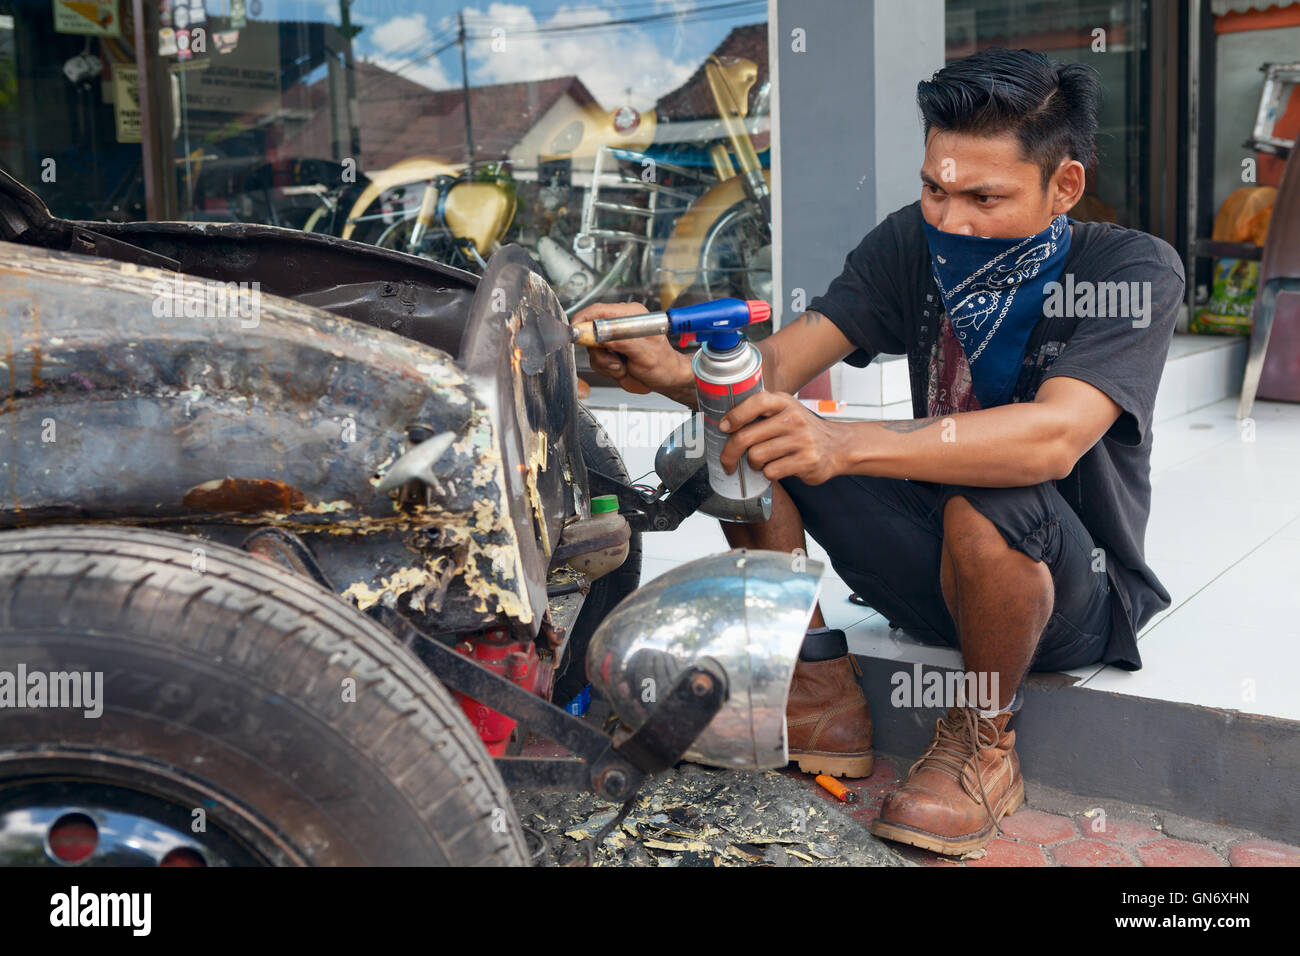 BALI, INDONESIA - MARCH 20: Young Balinese man cleans a body of an old volkswagen beetle during restoring vintage - Stock Image